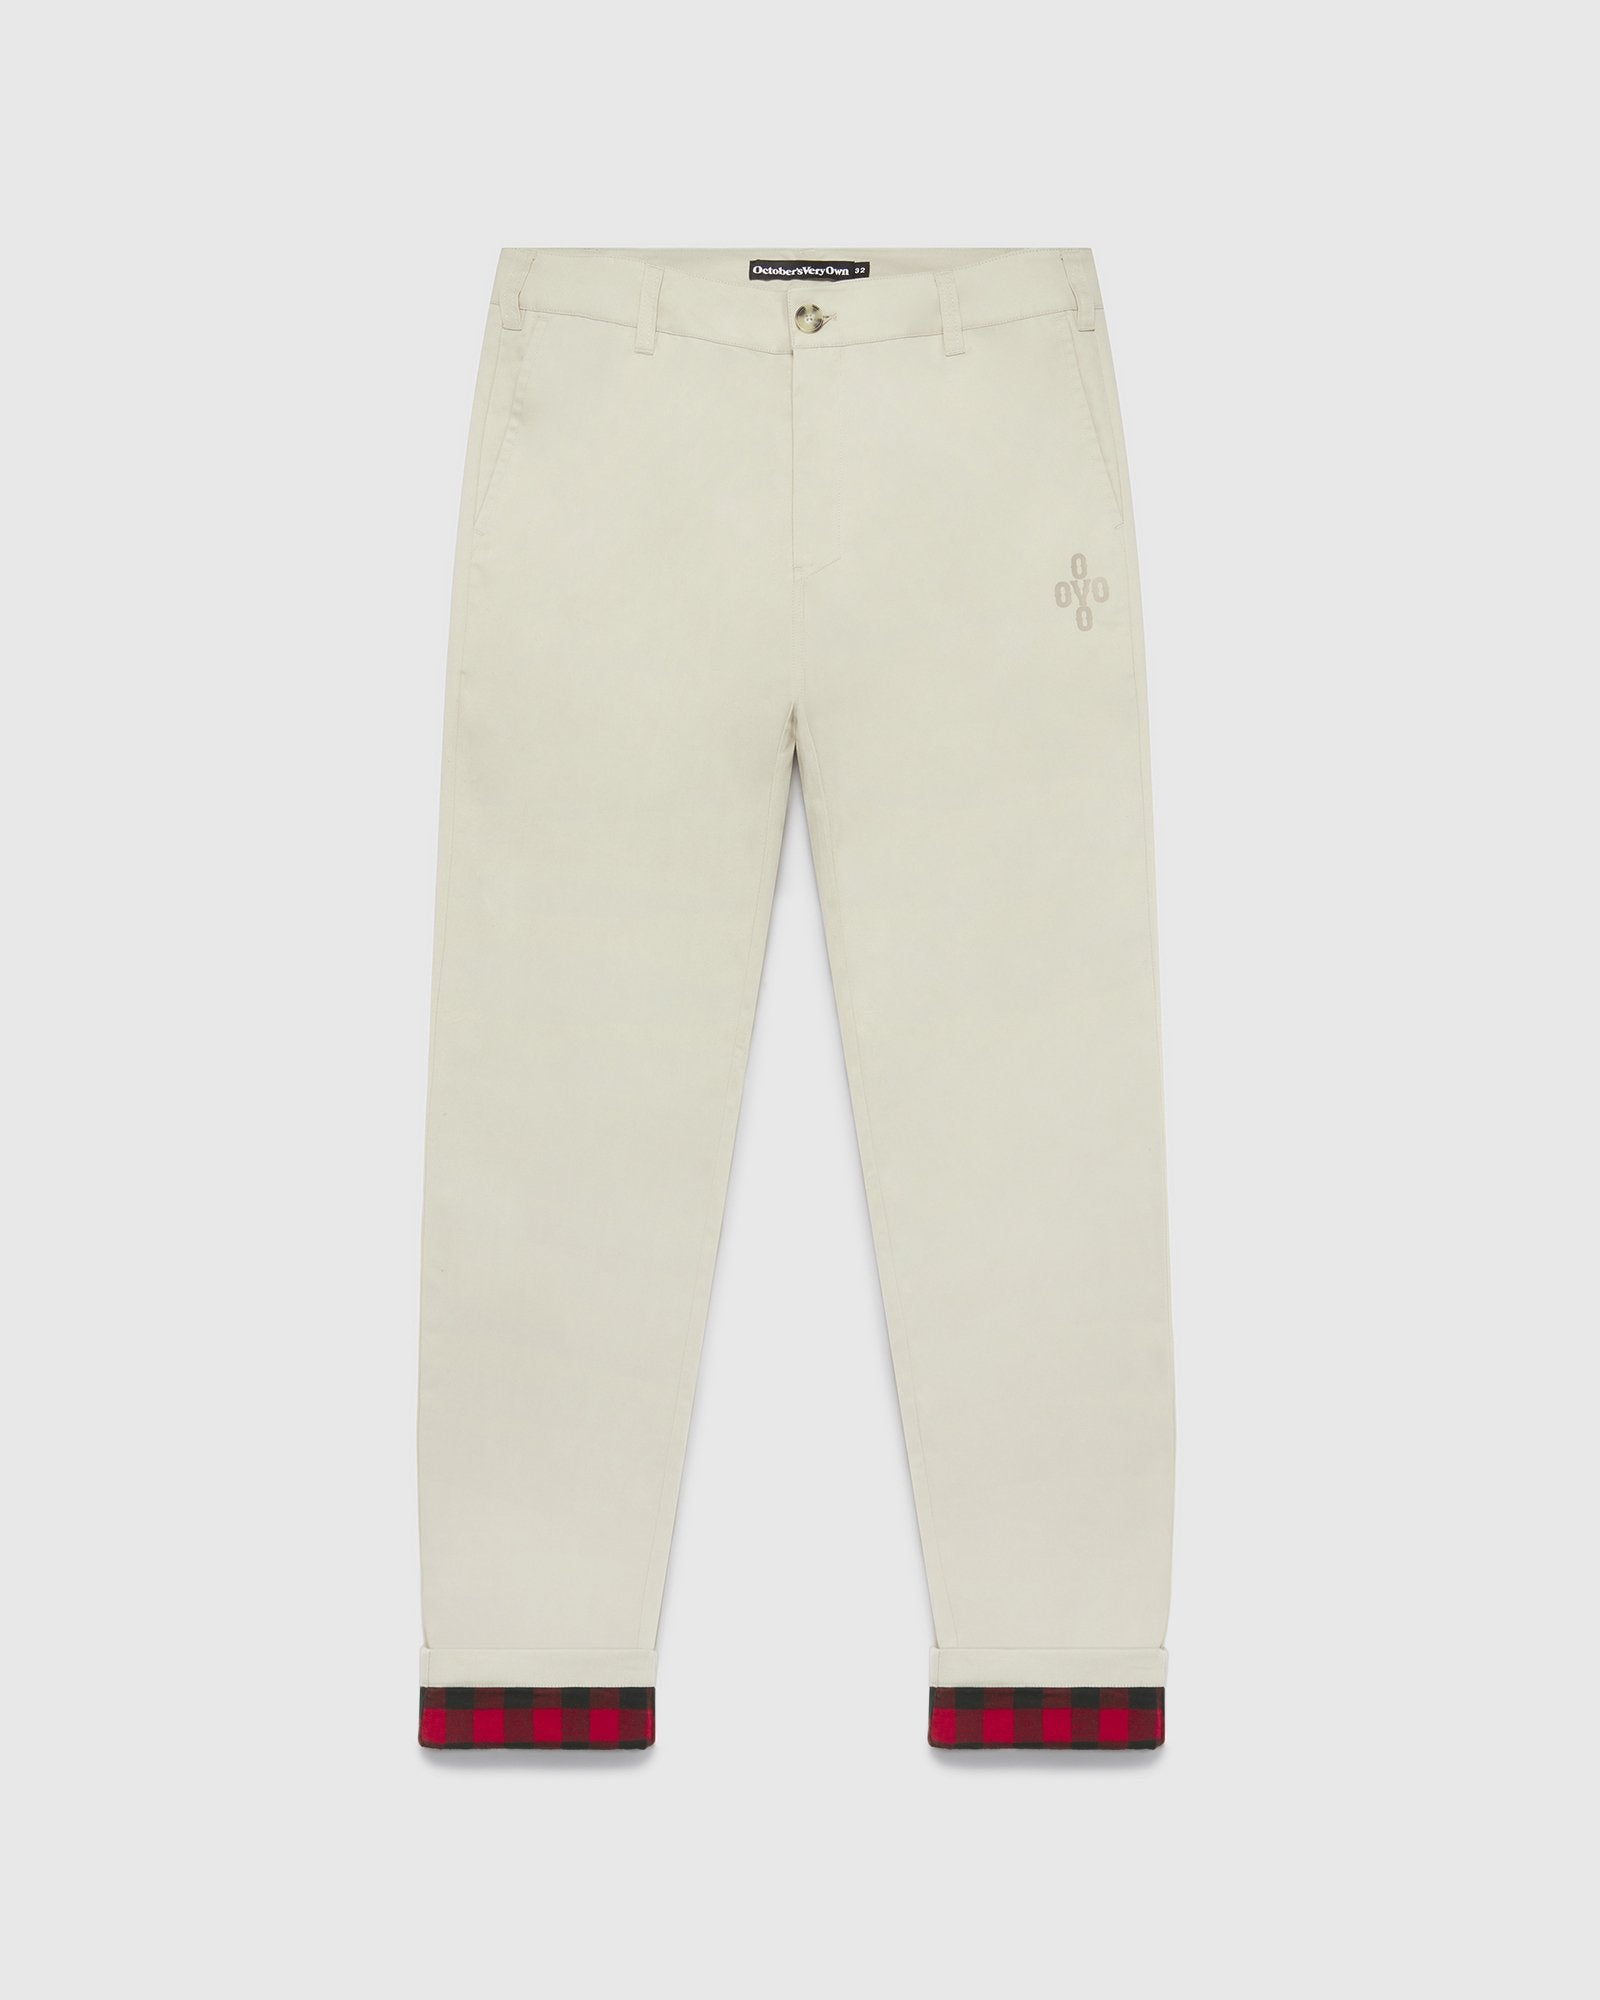 FLANNEL LINED CHINO PANT - SAND/RED IMAGE #1